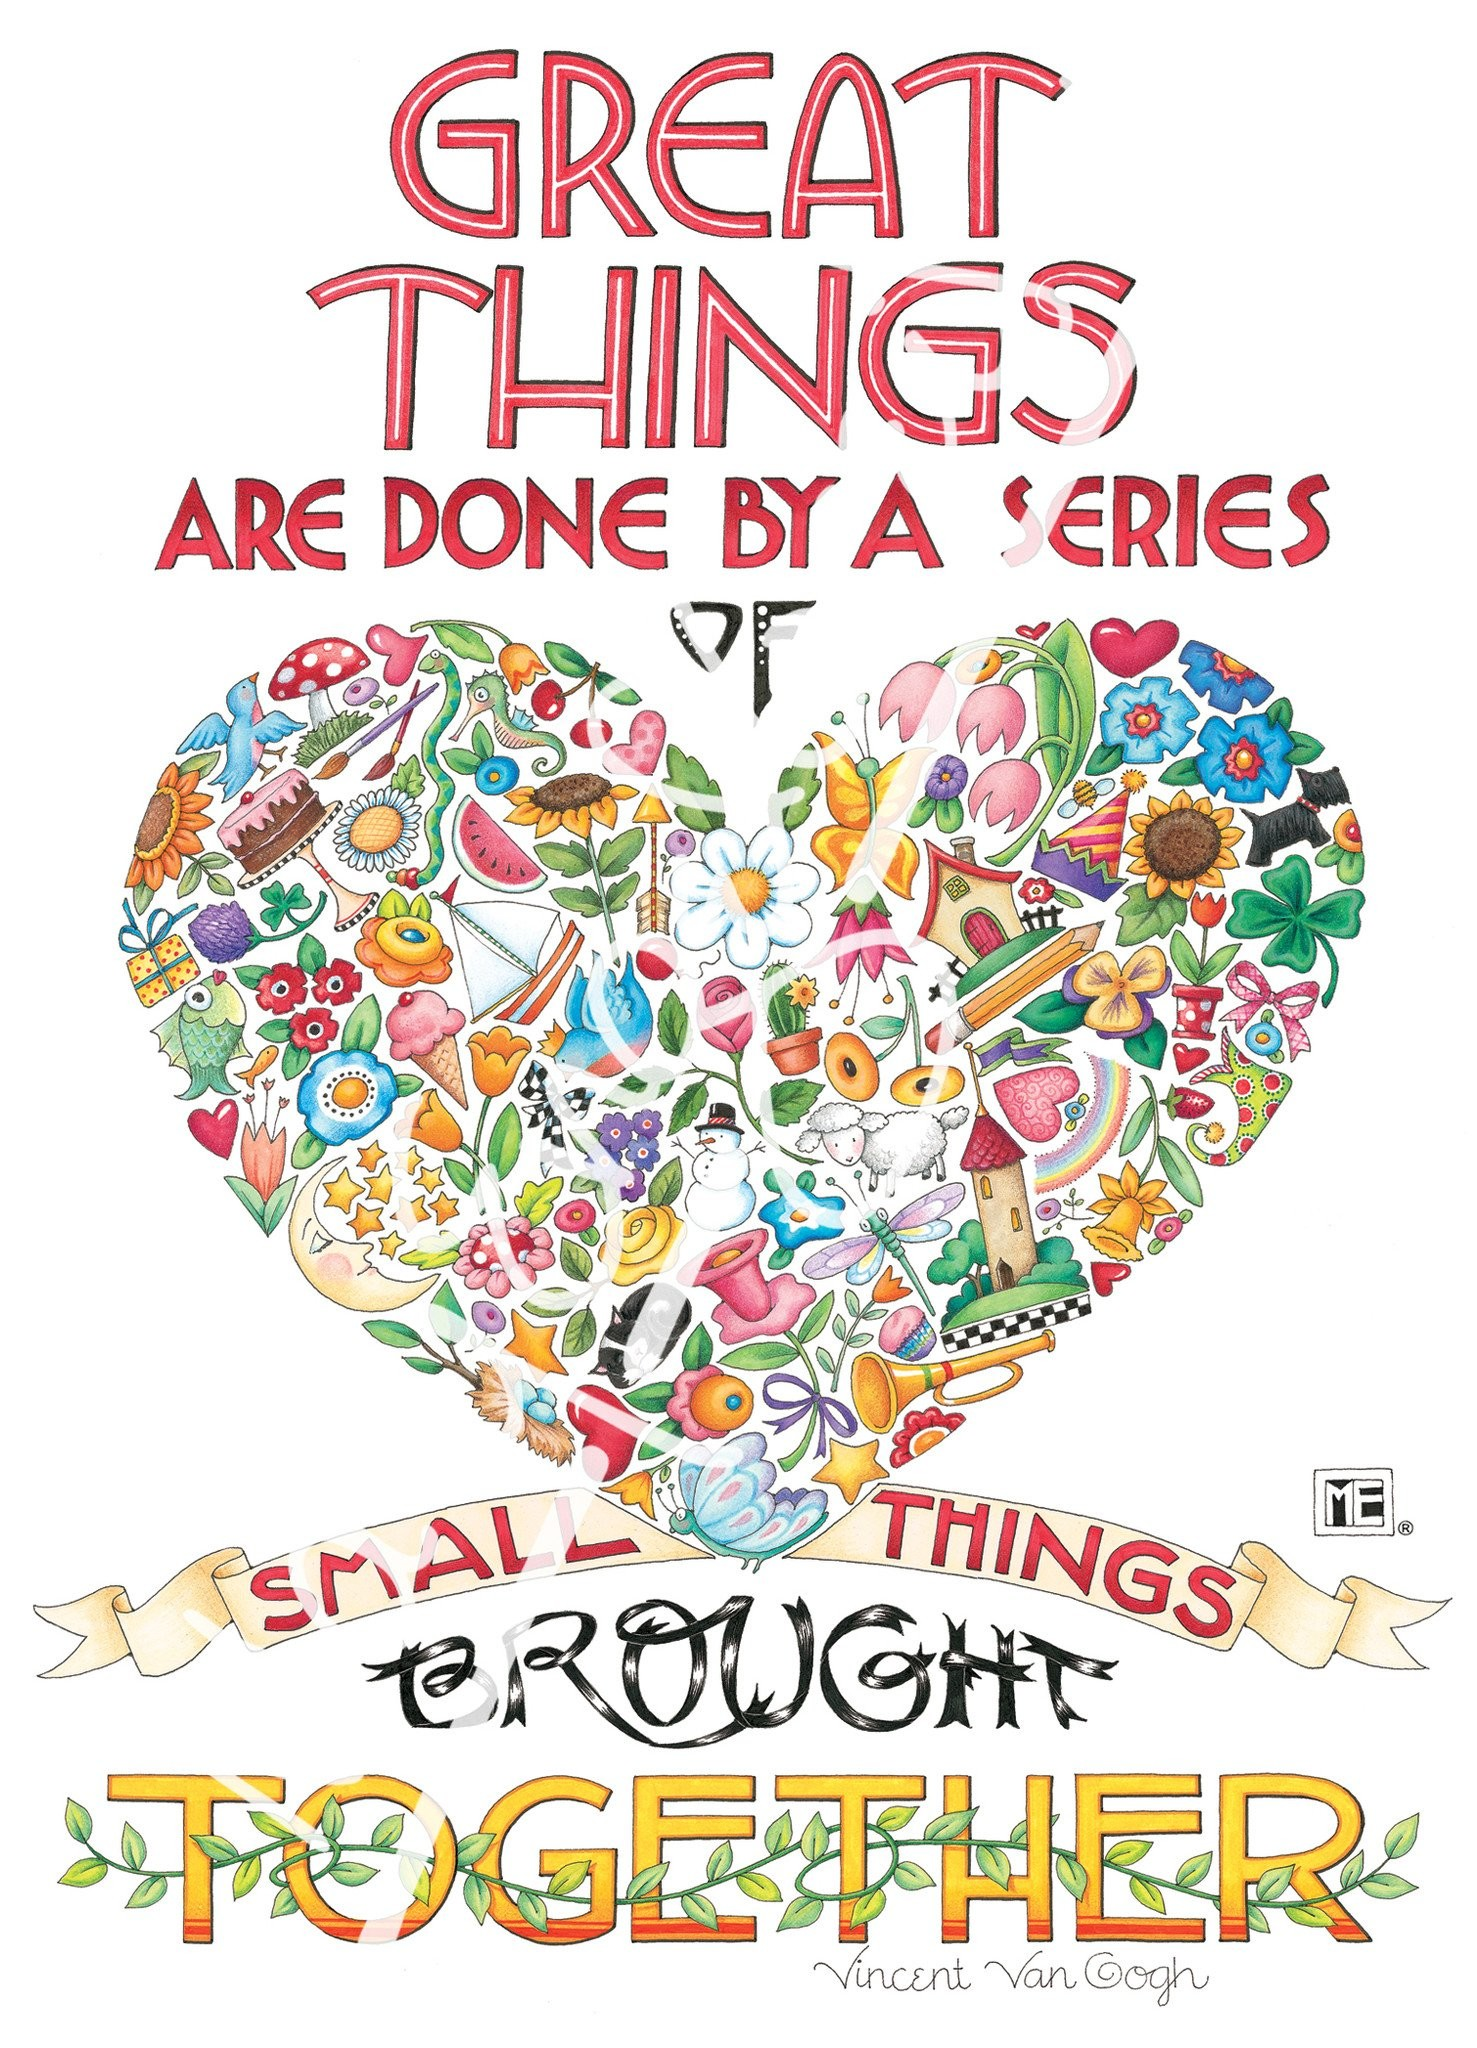 3840x2160 mary engelbreit quote the only thing i know for sure about the creative process - Mary Engelbreit Coloring Book